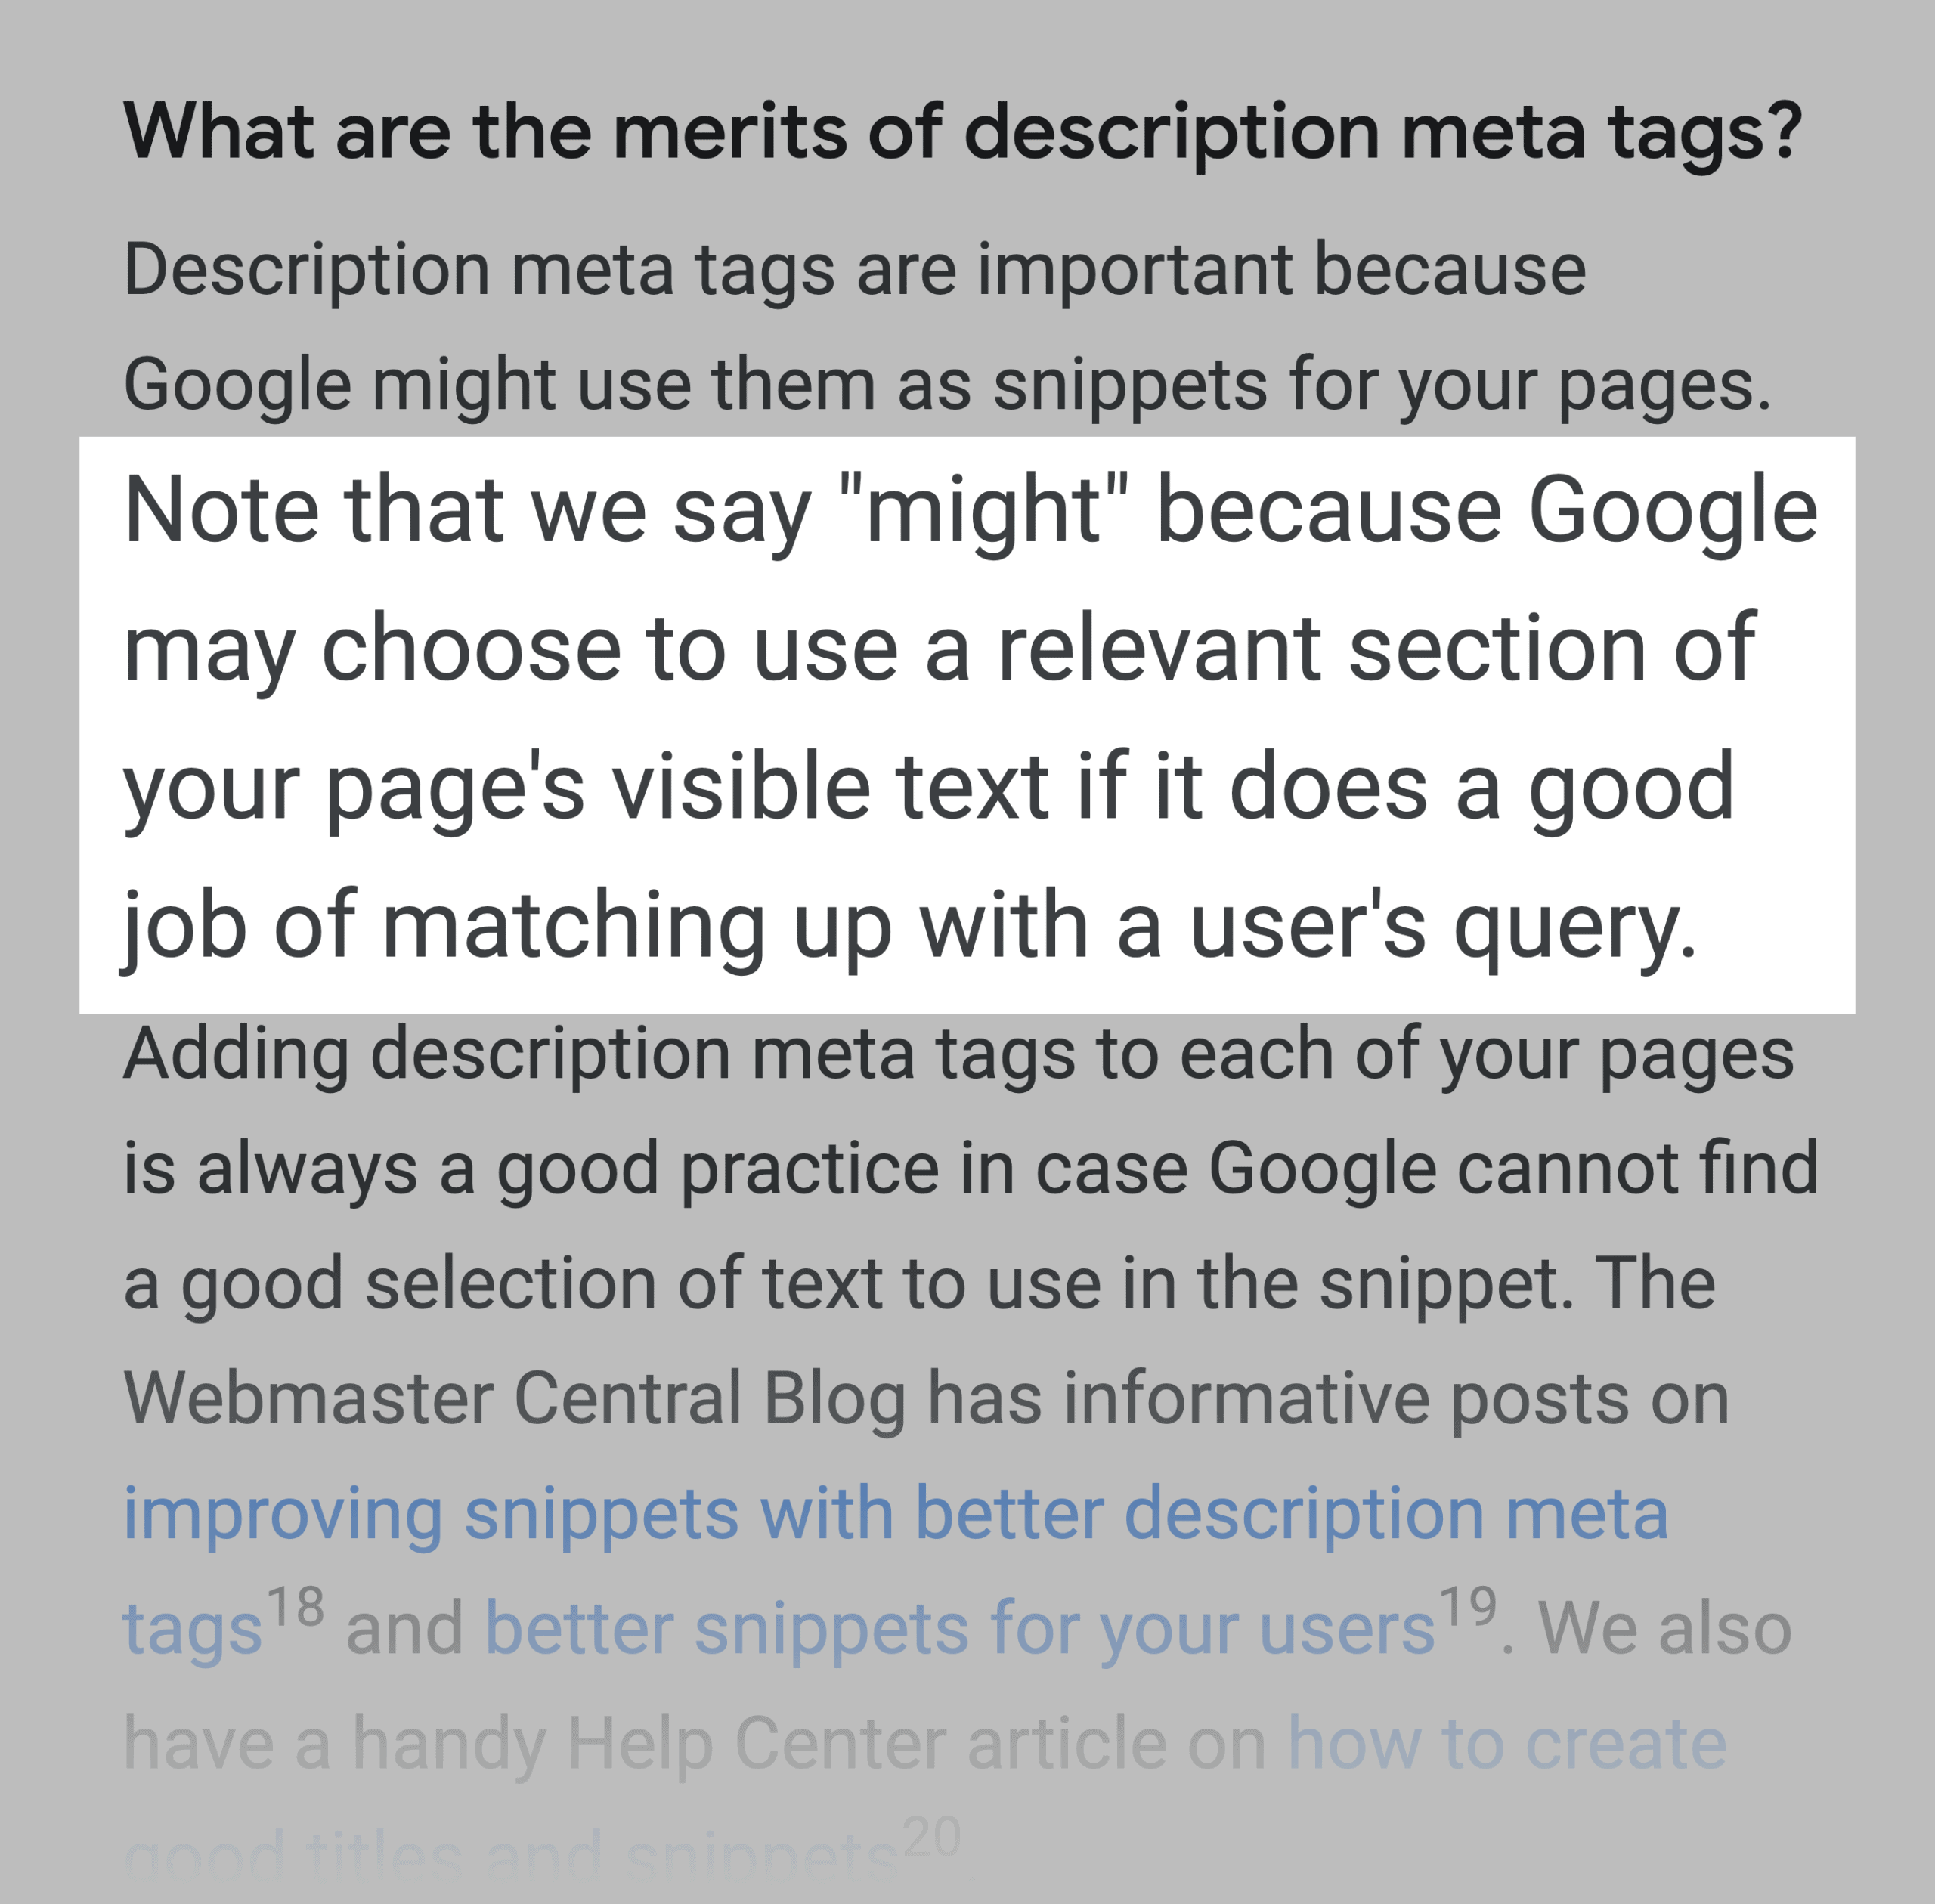 Google Will Often Replace Meta Description With Content From Page